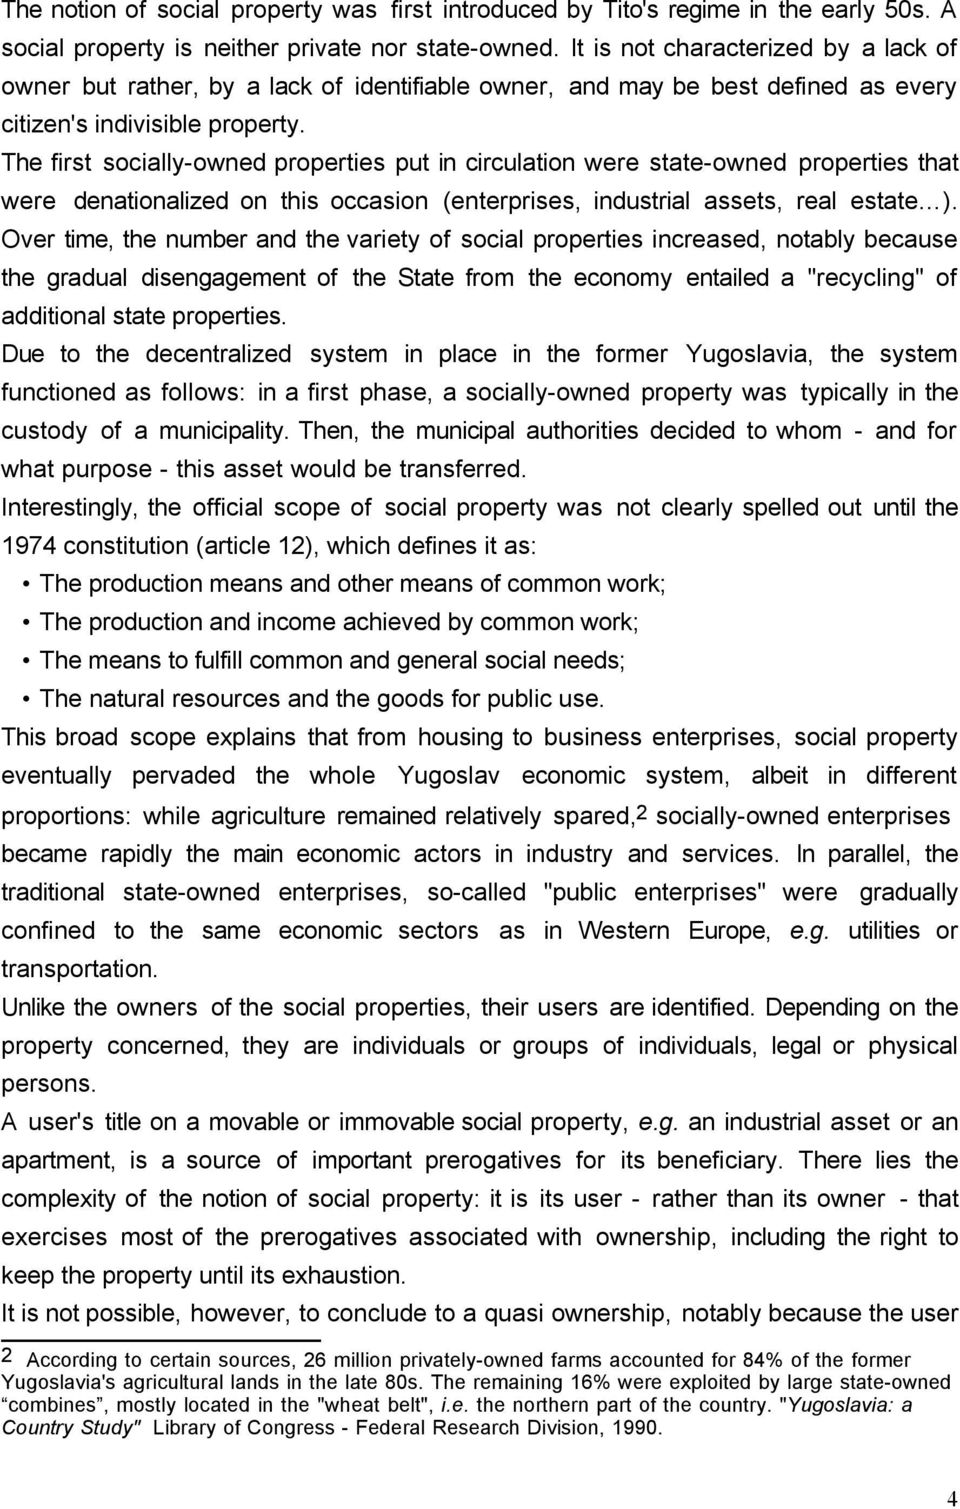 The first socially-owned properties put in circulation were state-owned properties that were denationalized on this occasion (enterprises, industrial assets, real estate ).